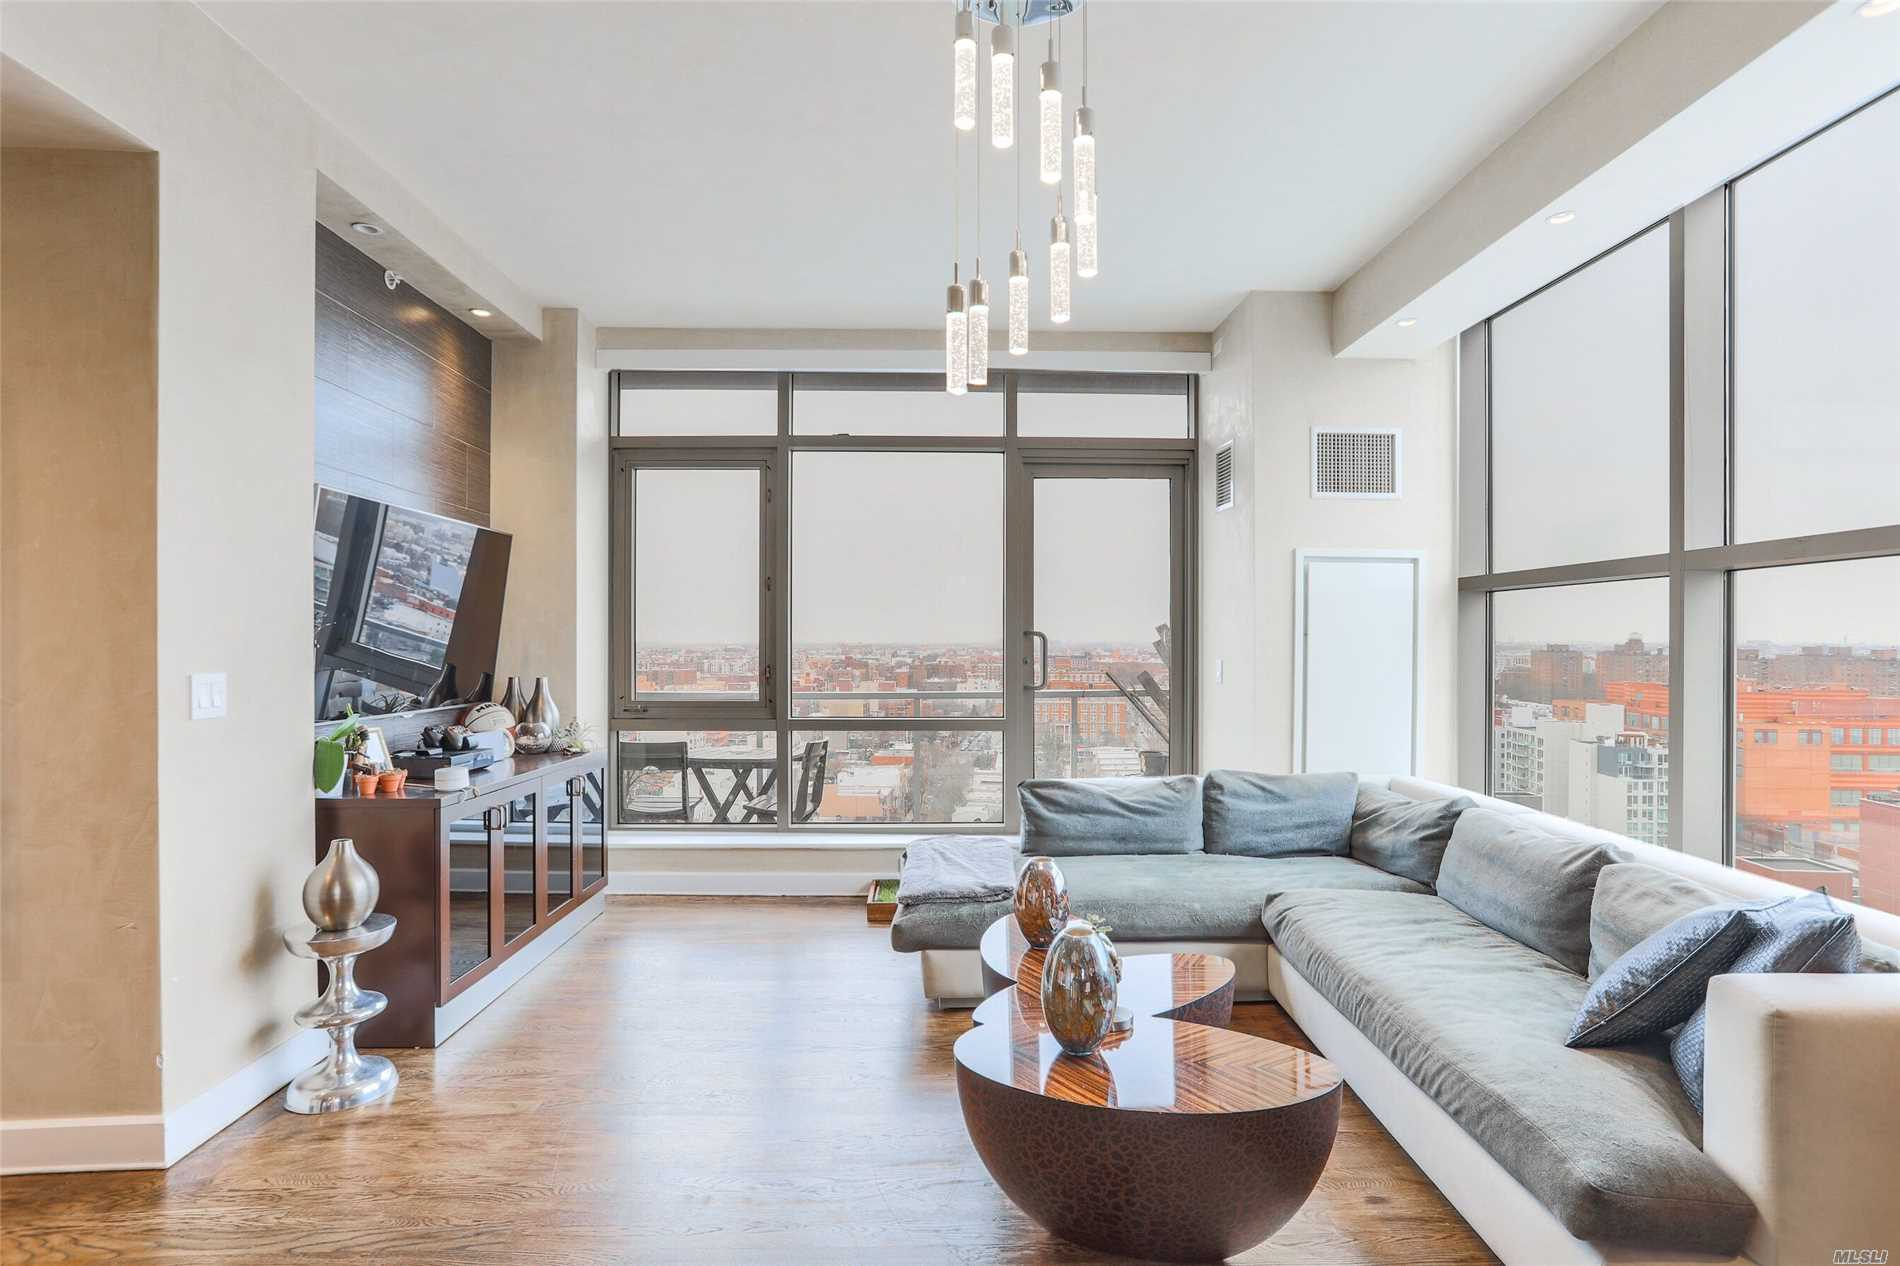 Gorgeous Two Bedroom Unit W/ A Balcony & 3 Parking Spots. Amenities Include Full-Time Doorman, Fitness Center, Landscaped Courtyard W/ Grilling Area, Bike Rack & Garage Parking. Steps From The New Ferry W/ Stops To Manhattan & Brooklyn. Walking Distance To Socrates Sculpture Park, Astoria Park, Noguchi Museum, & Costco. Unit Features A Gorgeous Kitchen W/ Stainless Steel Appliances, Hardwood Floors, Washer/Dryer In The Unit, Central Air & Heating, And A Balcony. Tax Abatement Until 2025